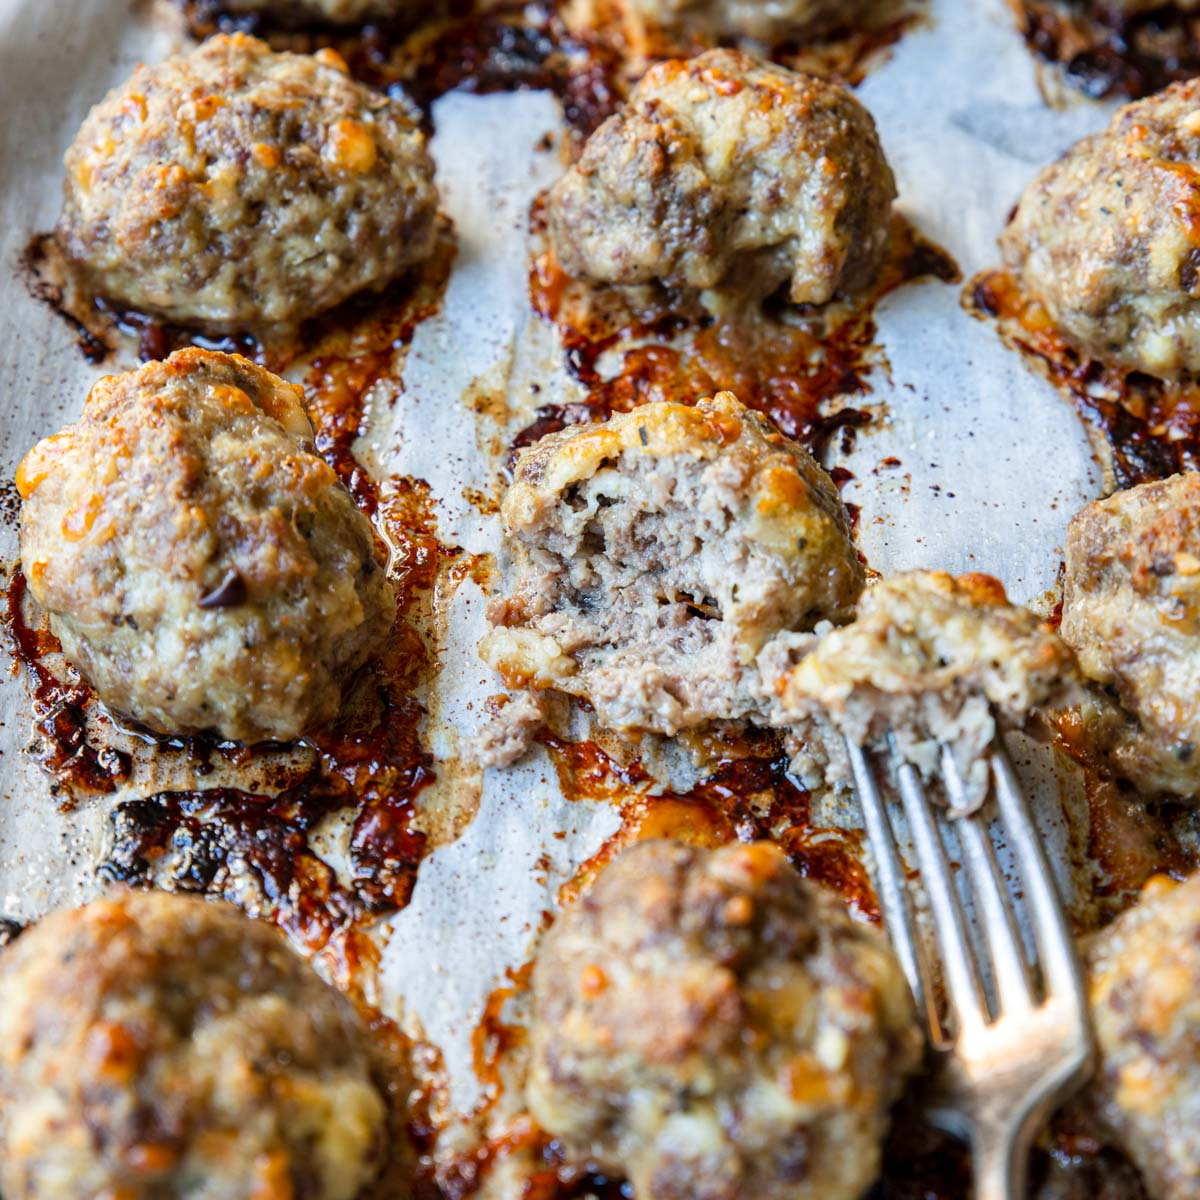 baked meatballs with one cut open